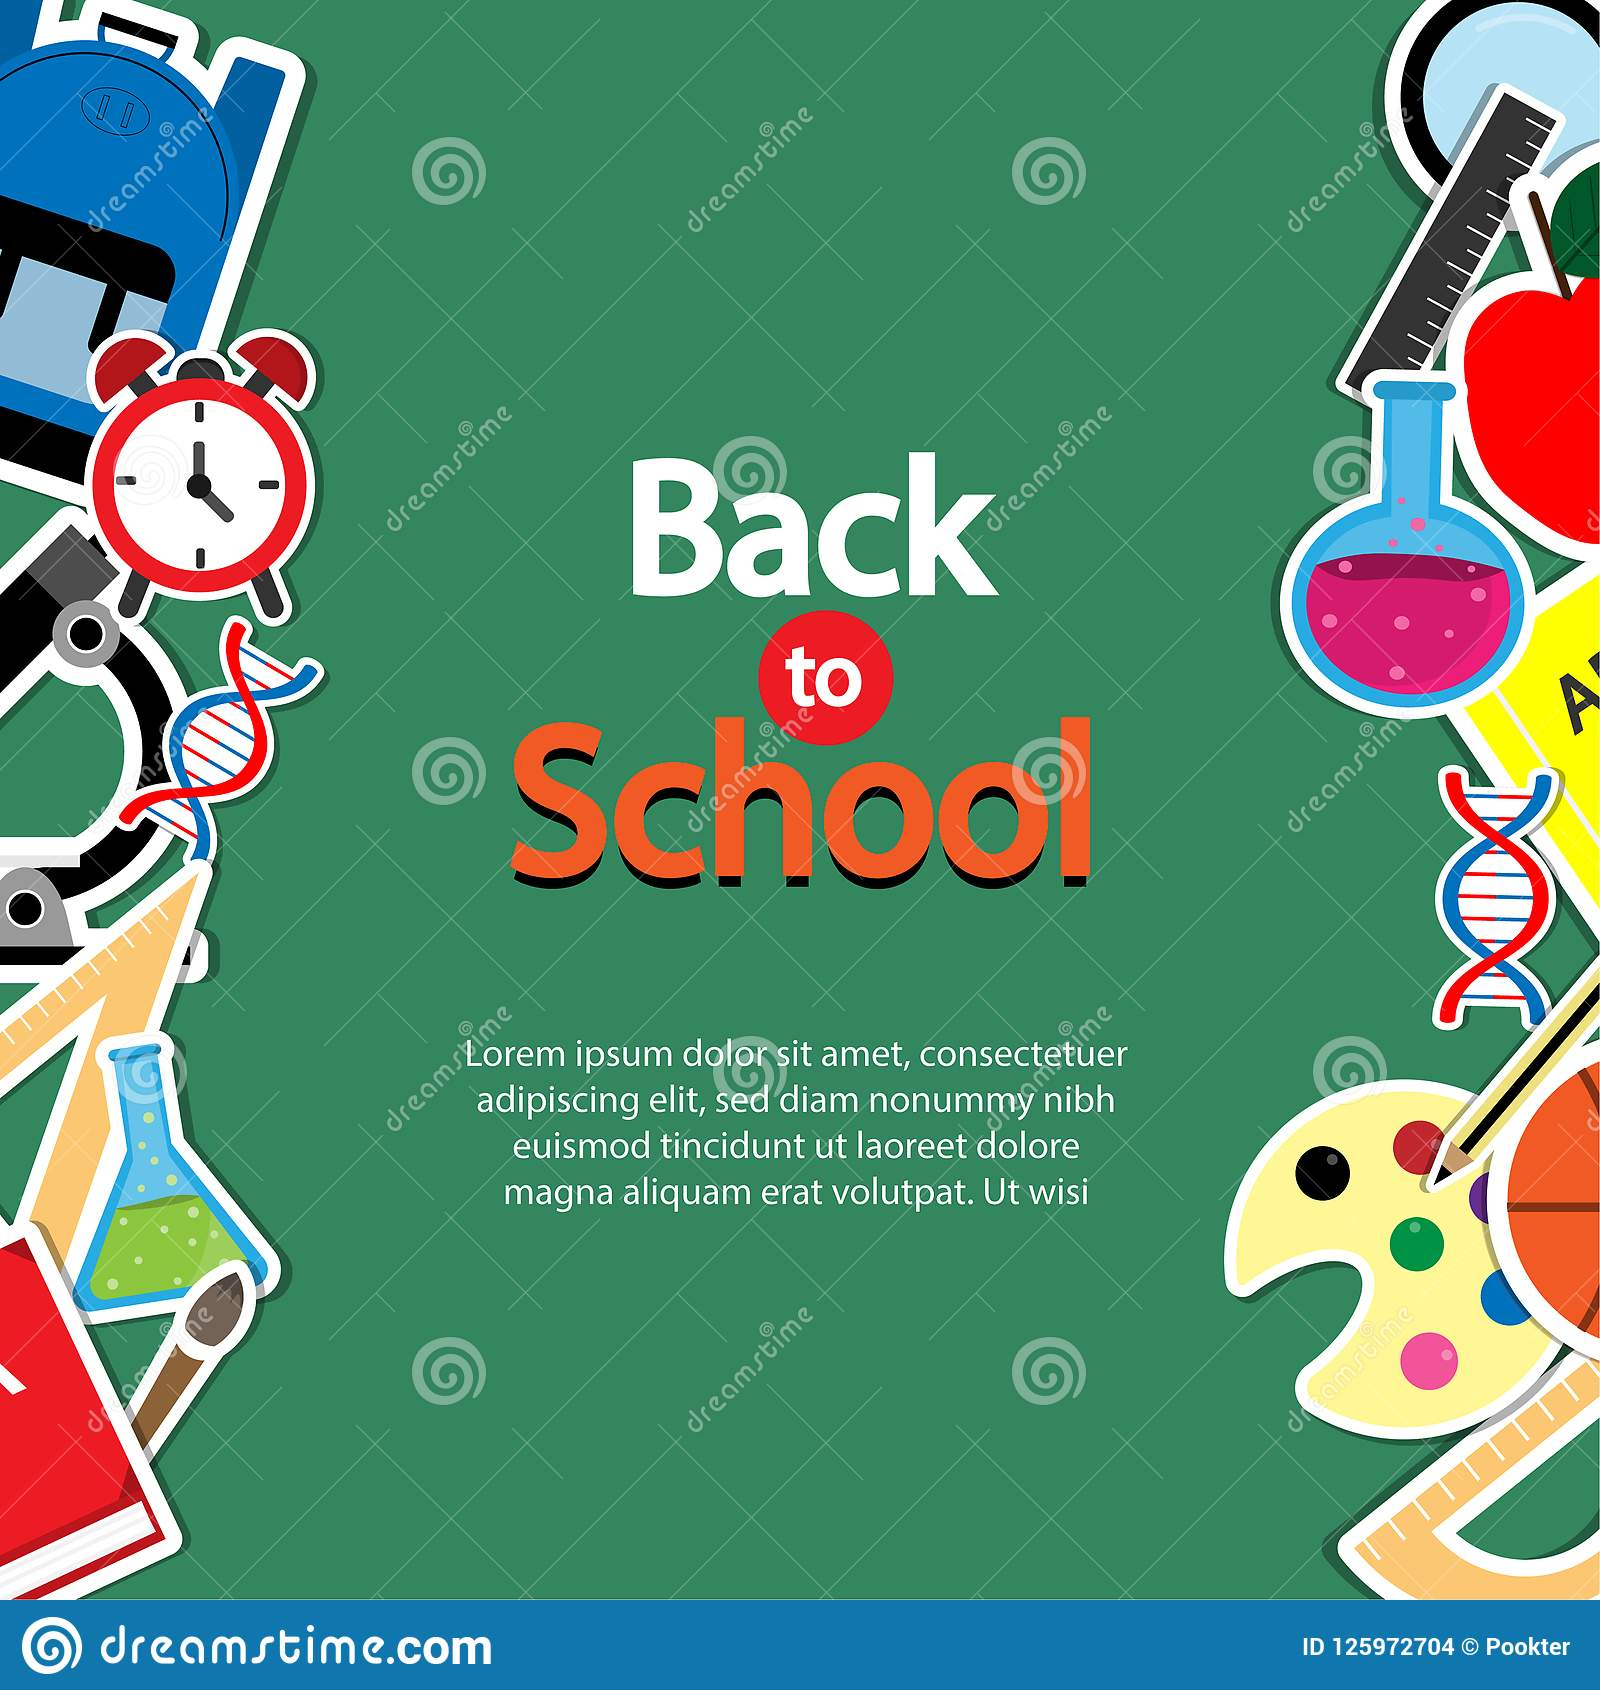 back to school theme icon set on chalkboard textured backdrop arts